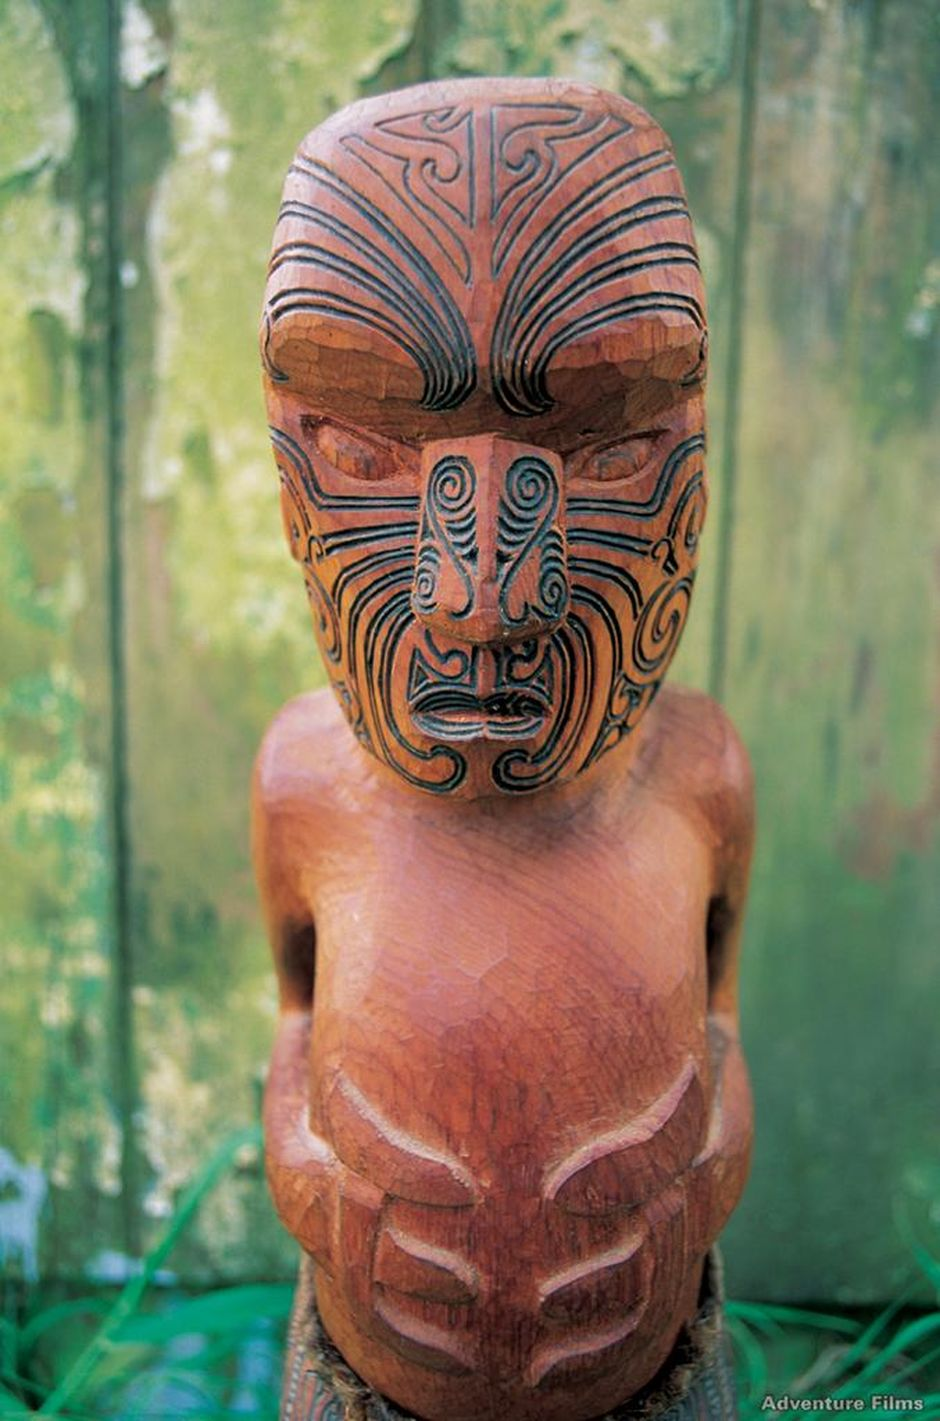 Maori carvings are intricate and fascinating.